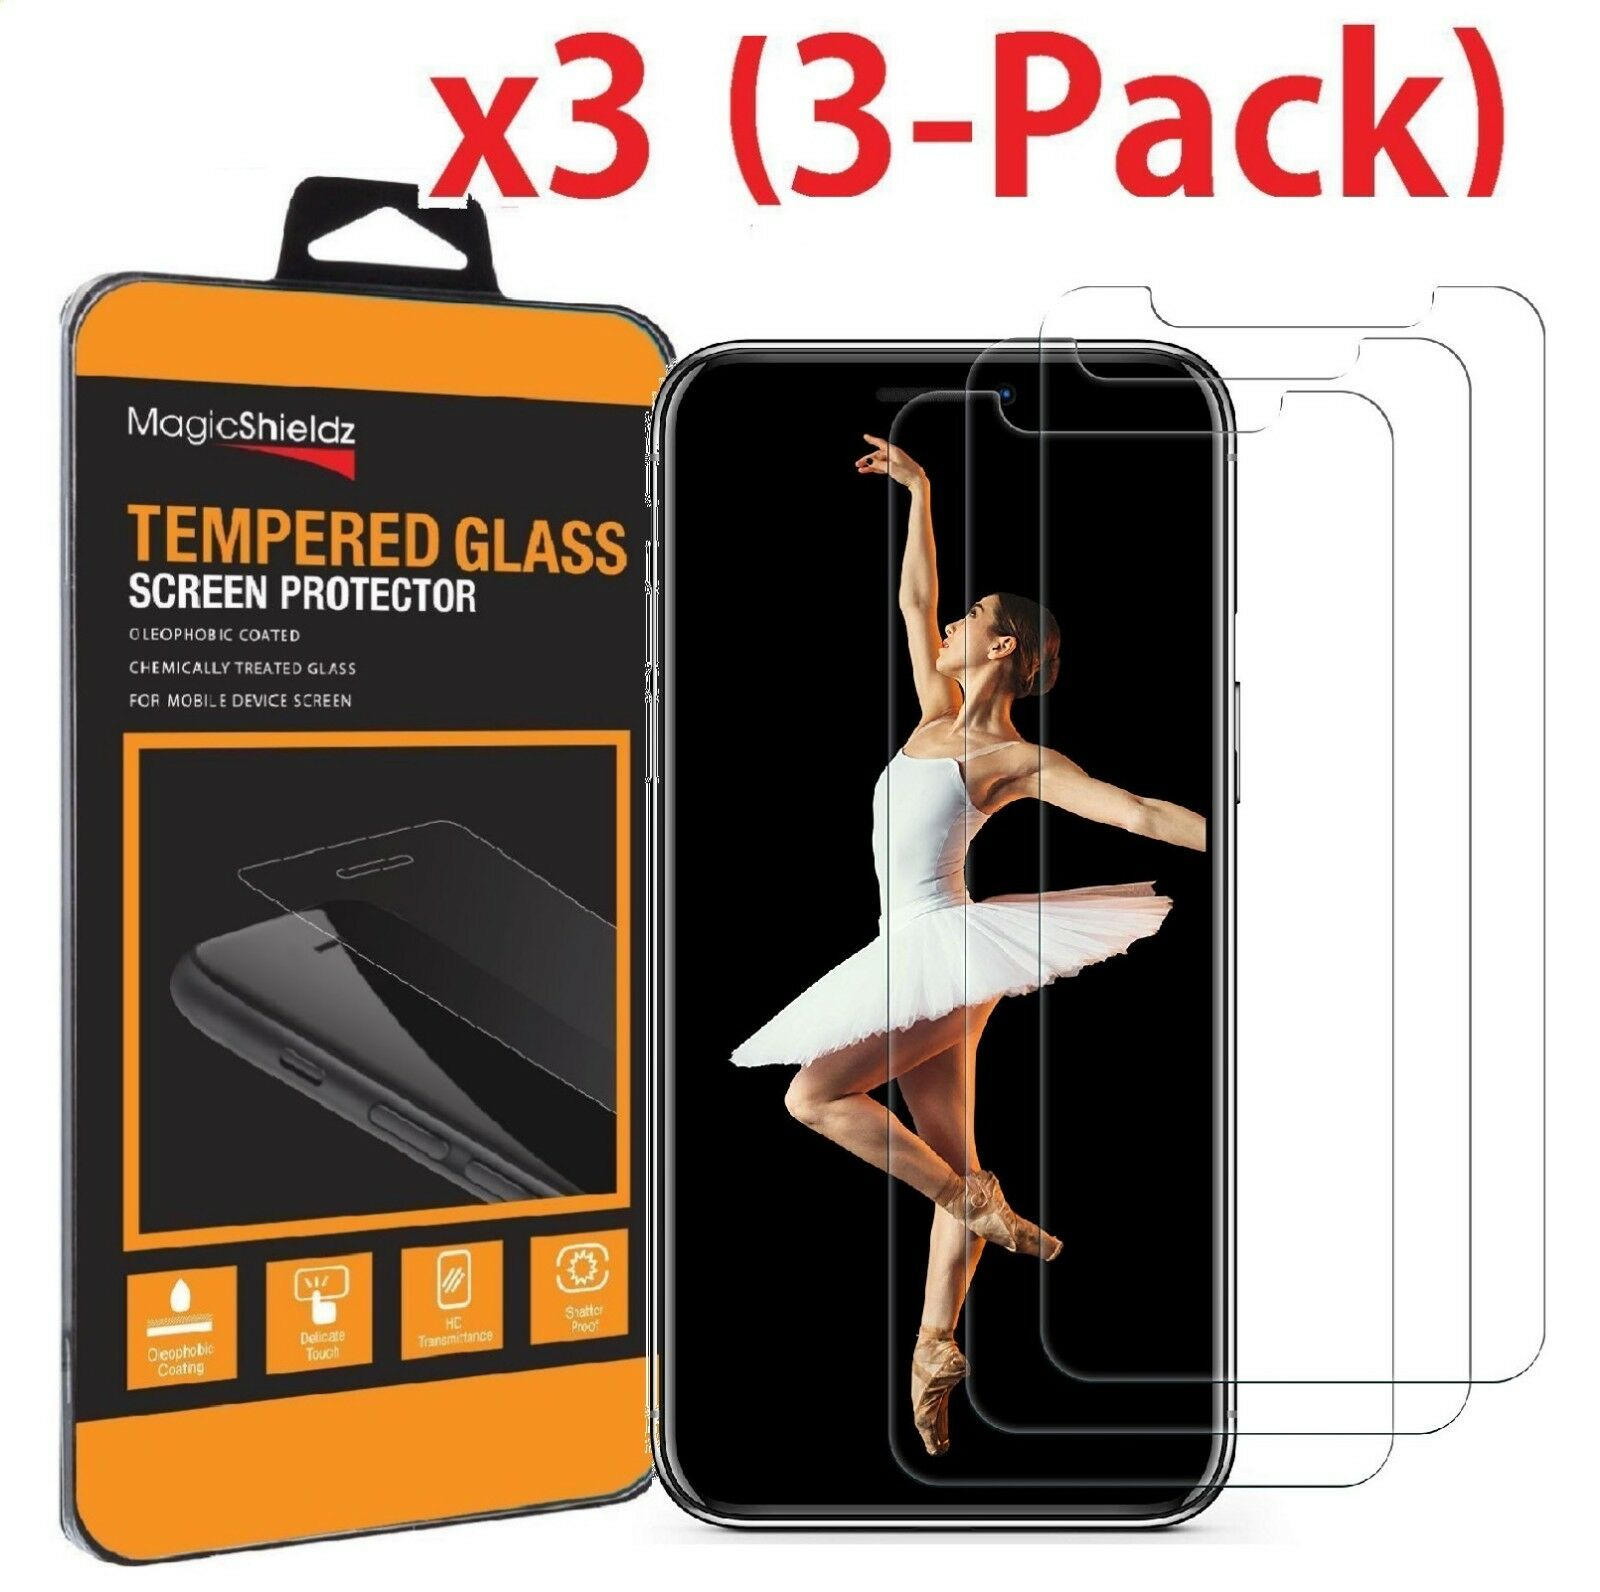 (3-Pack) Premium Tempered GLASS Screen Protector For iPhone X / XS / XR / XS Max -   10 - (3-Pack) Premium Tempered GLASS Screen Protector For iPhone X / XS / XR / XS Max electronics -  24 10 - Home Page